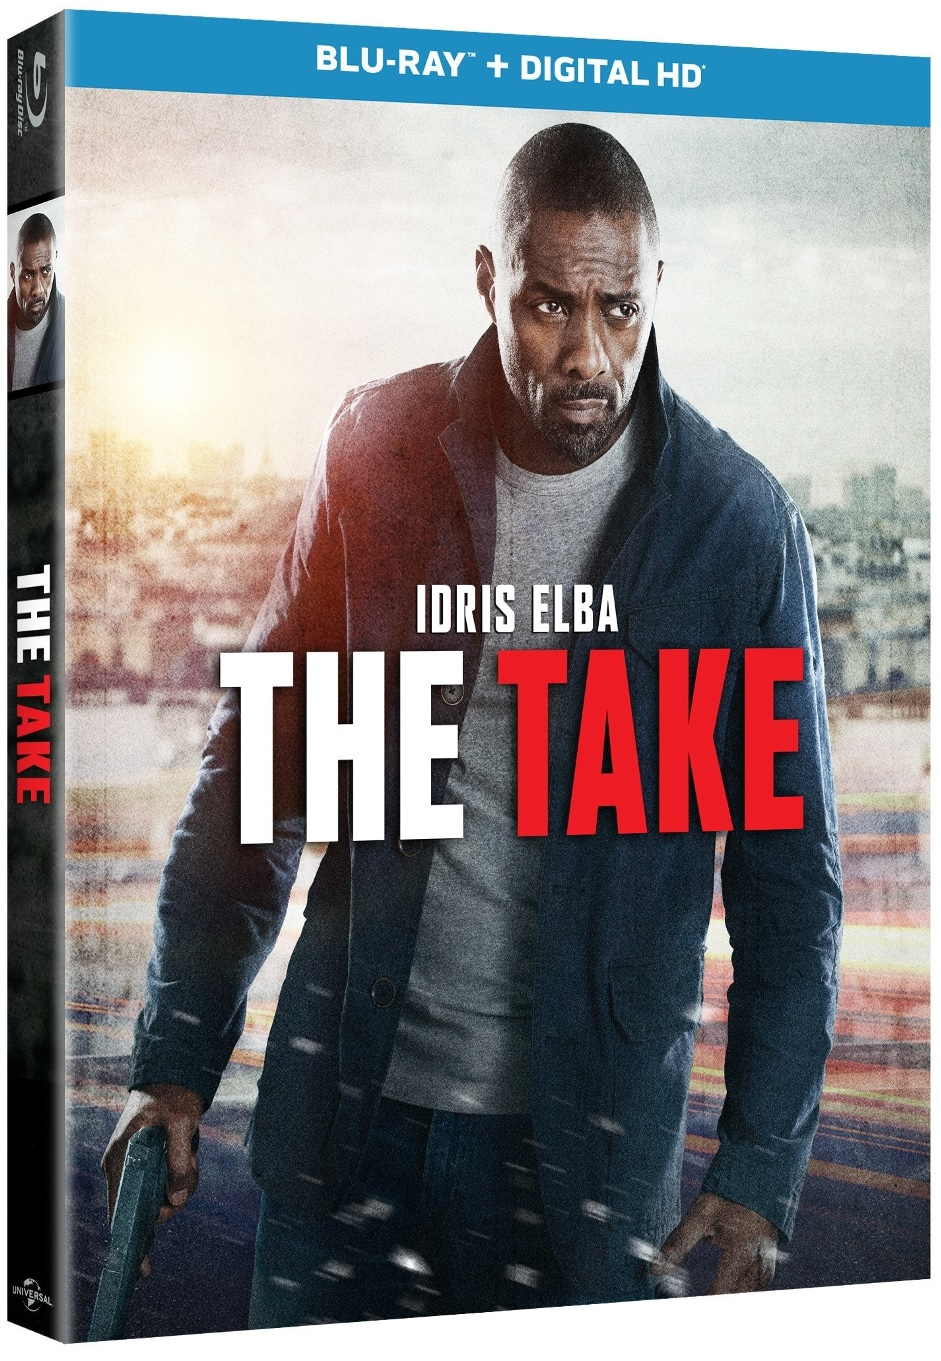 The TakeBlu-ray Review